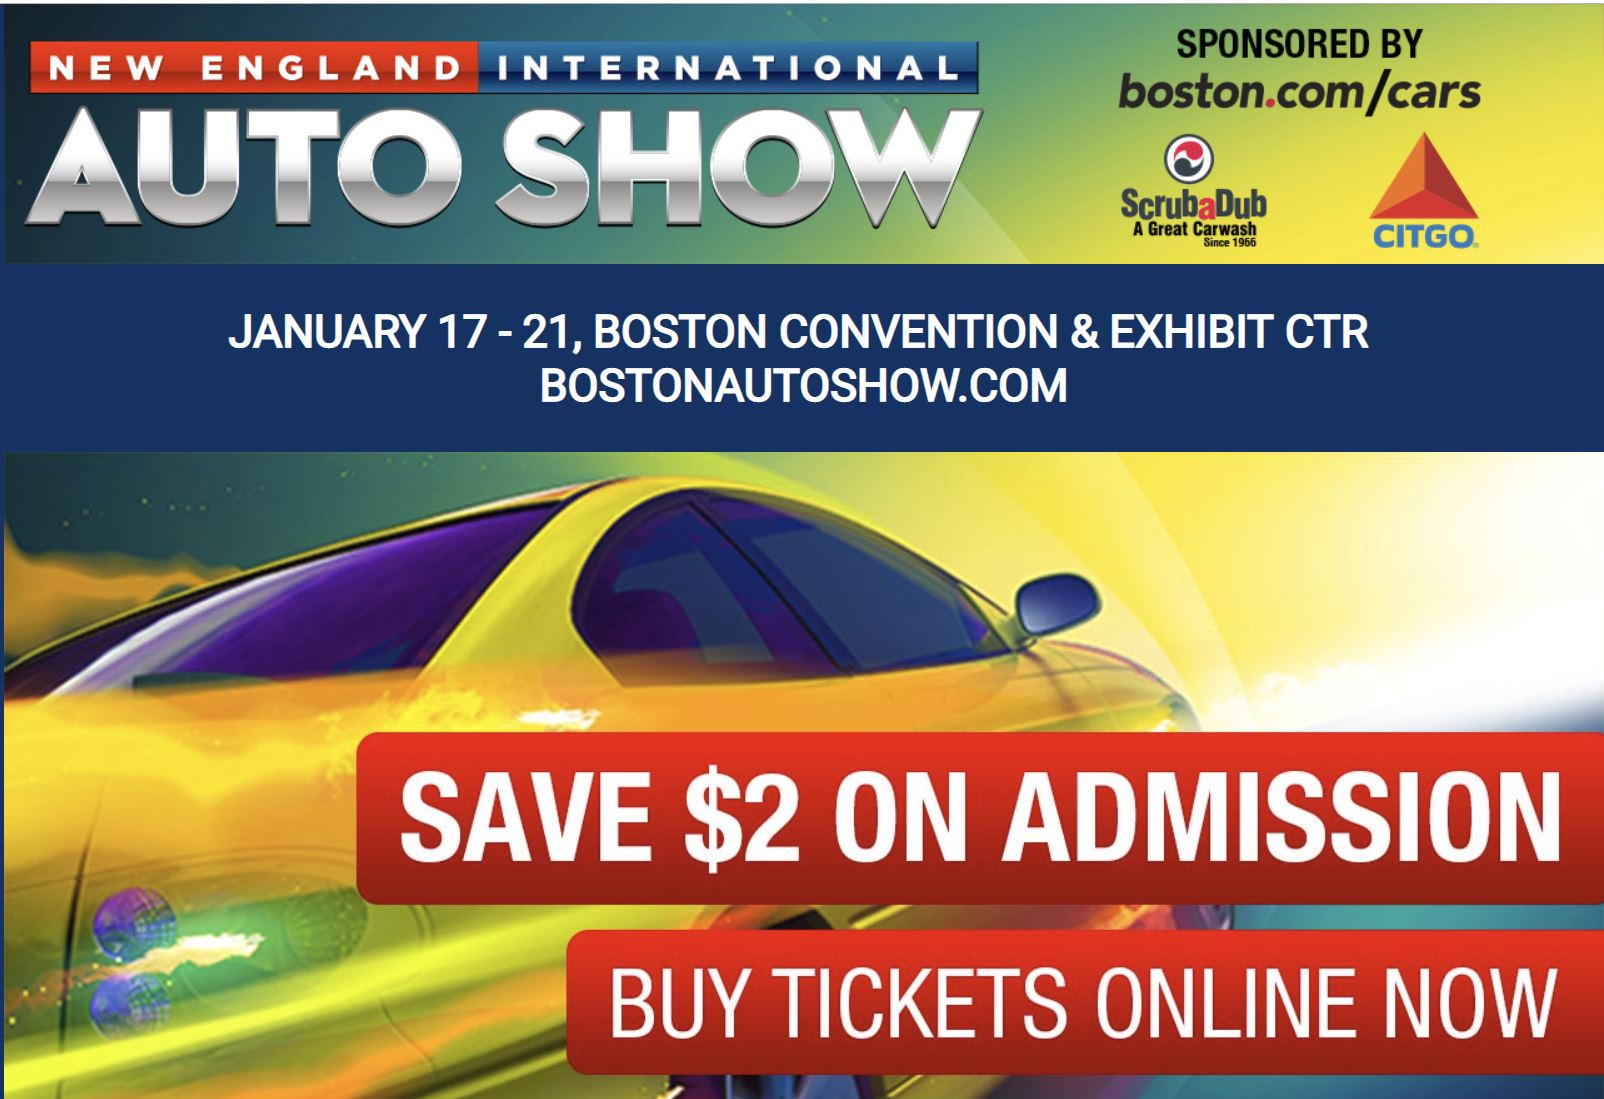 Come see NER at the Boston Auto Show Jan 17-21